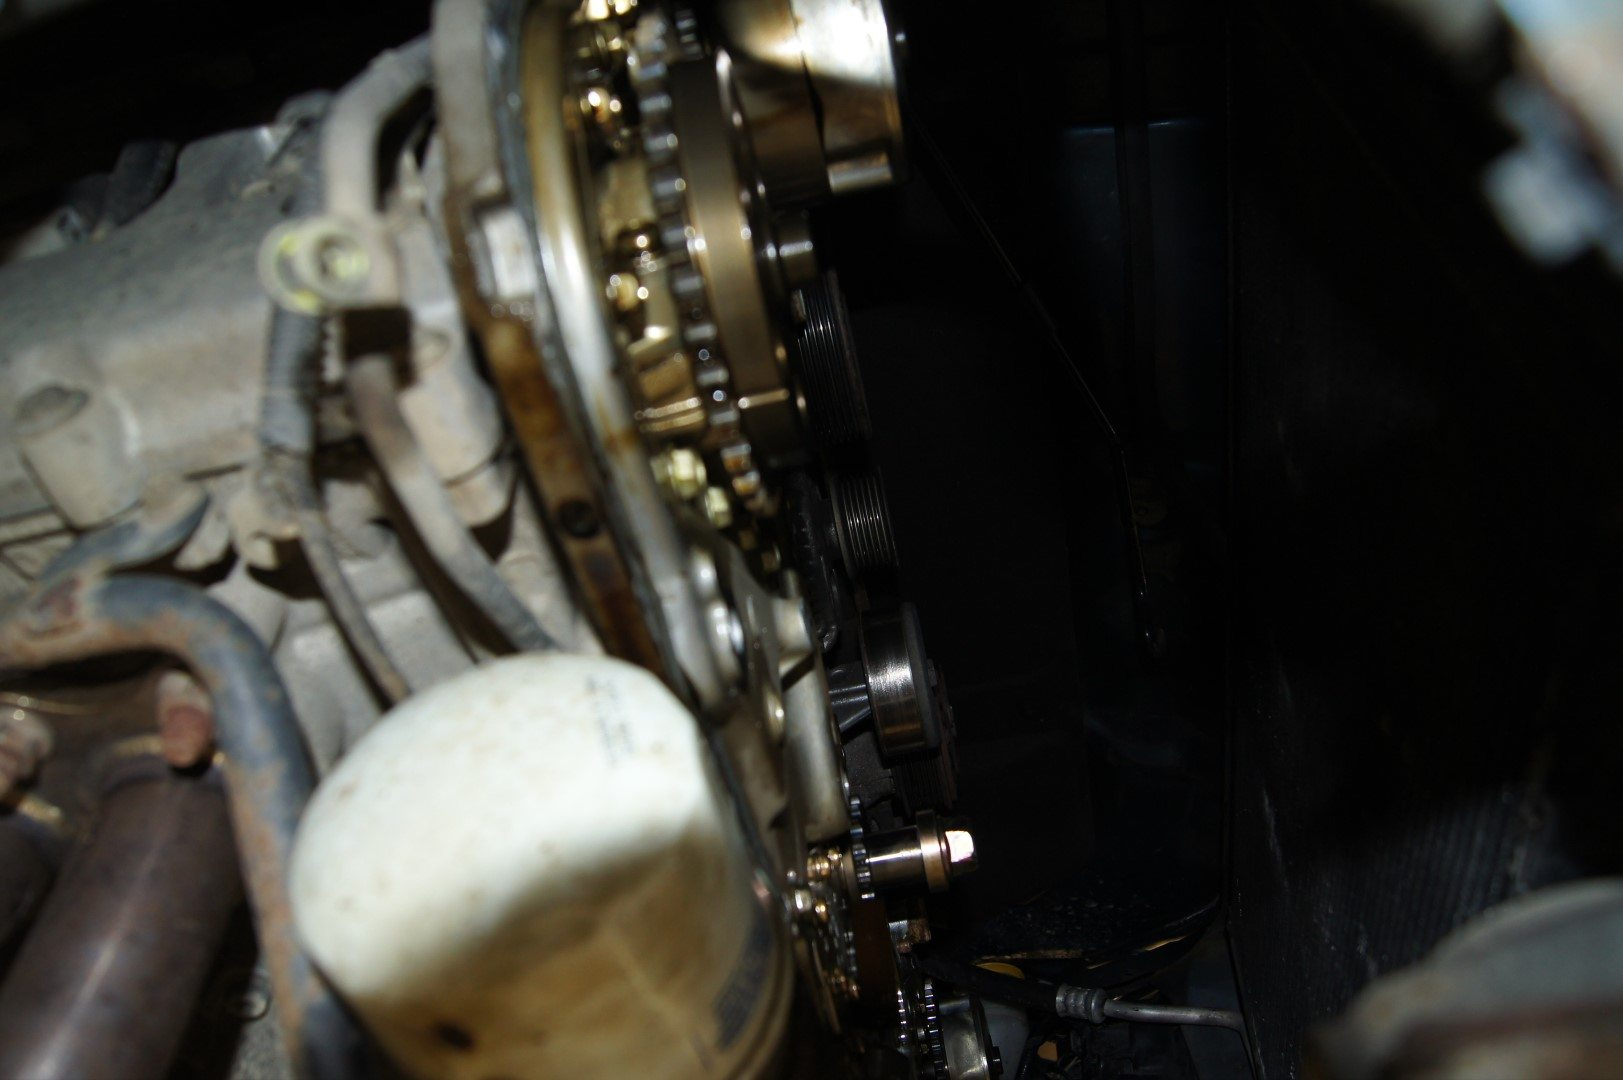 Subaru Legacy 30r Spec B Timing Chain Replacement Perfect Touch B4 Belt Diagram Undefined